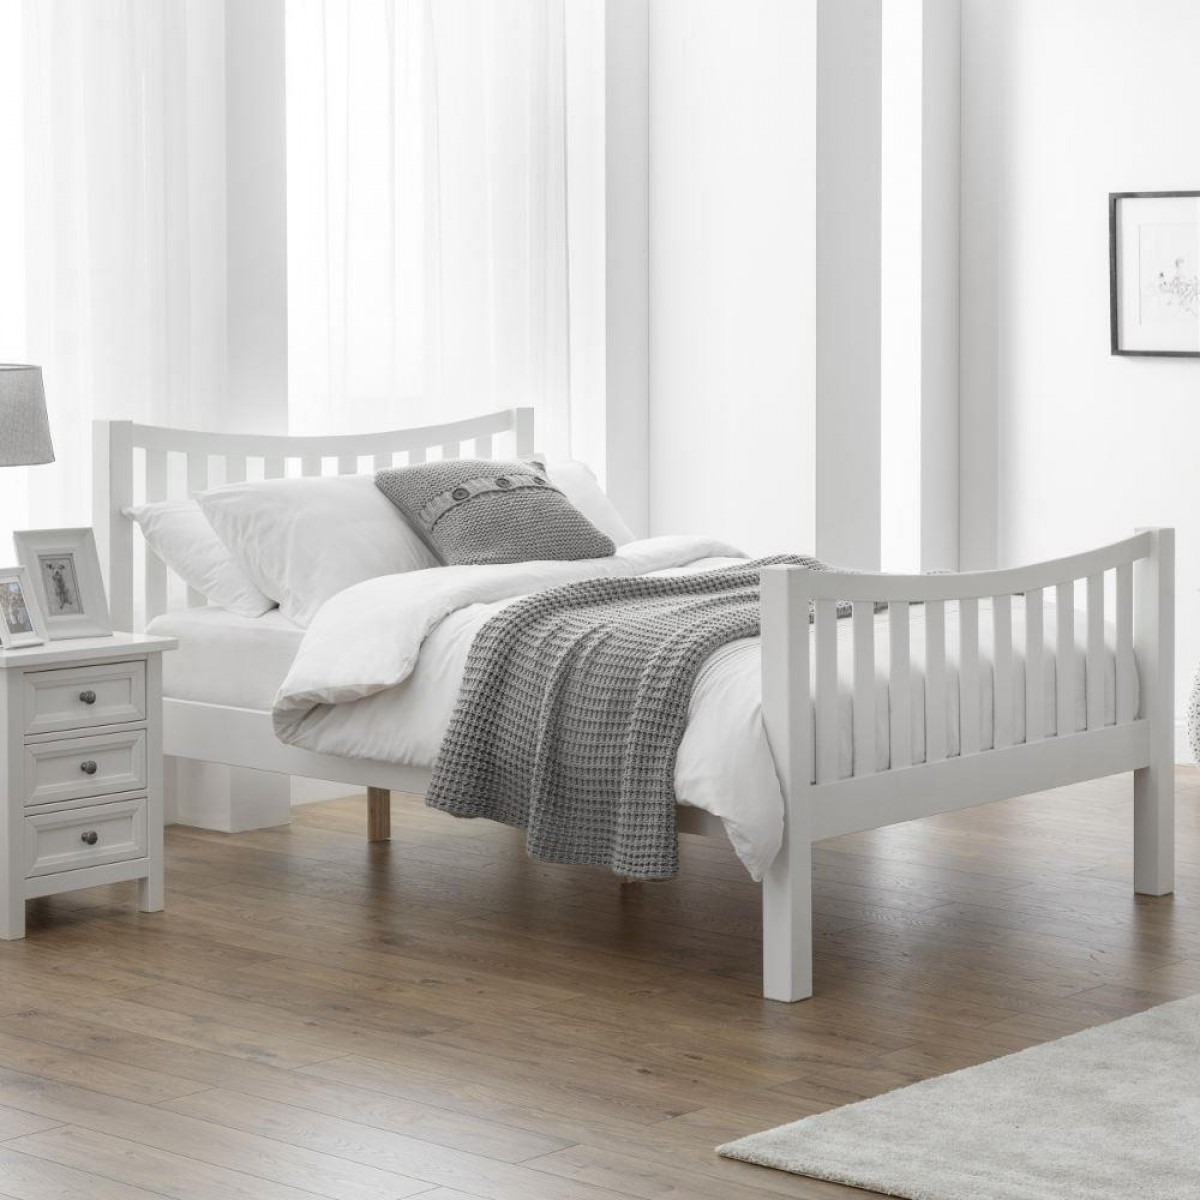 Madison Curved White Wooden Bed